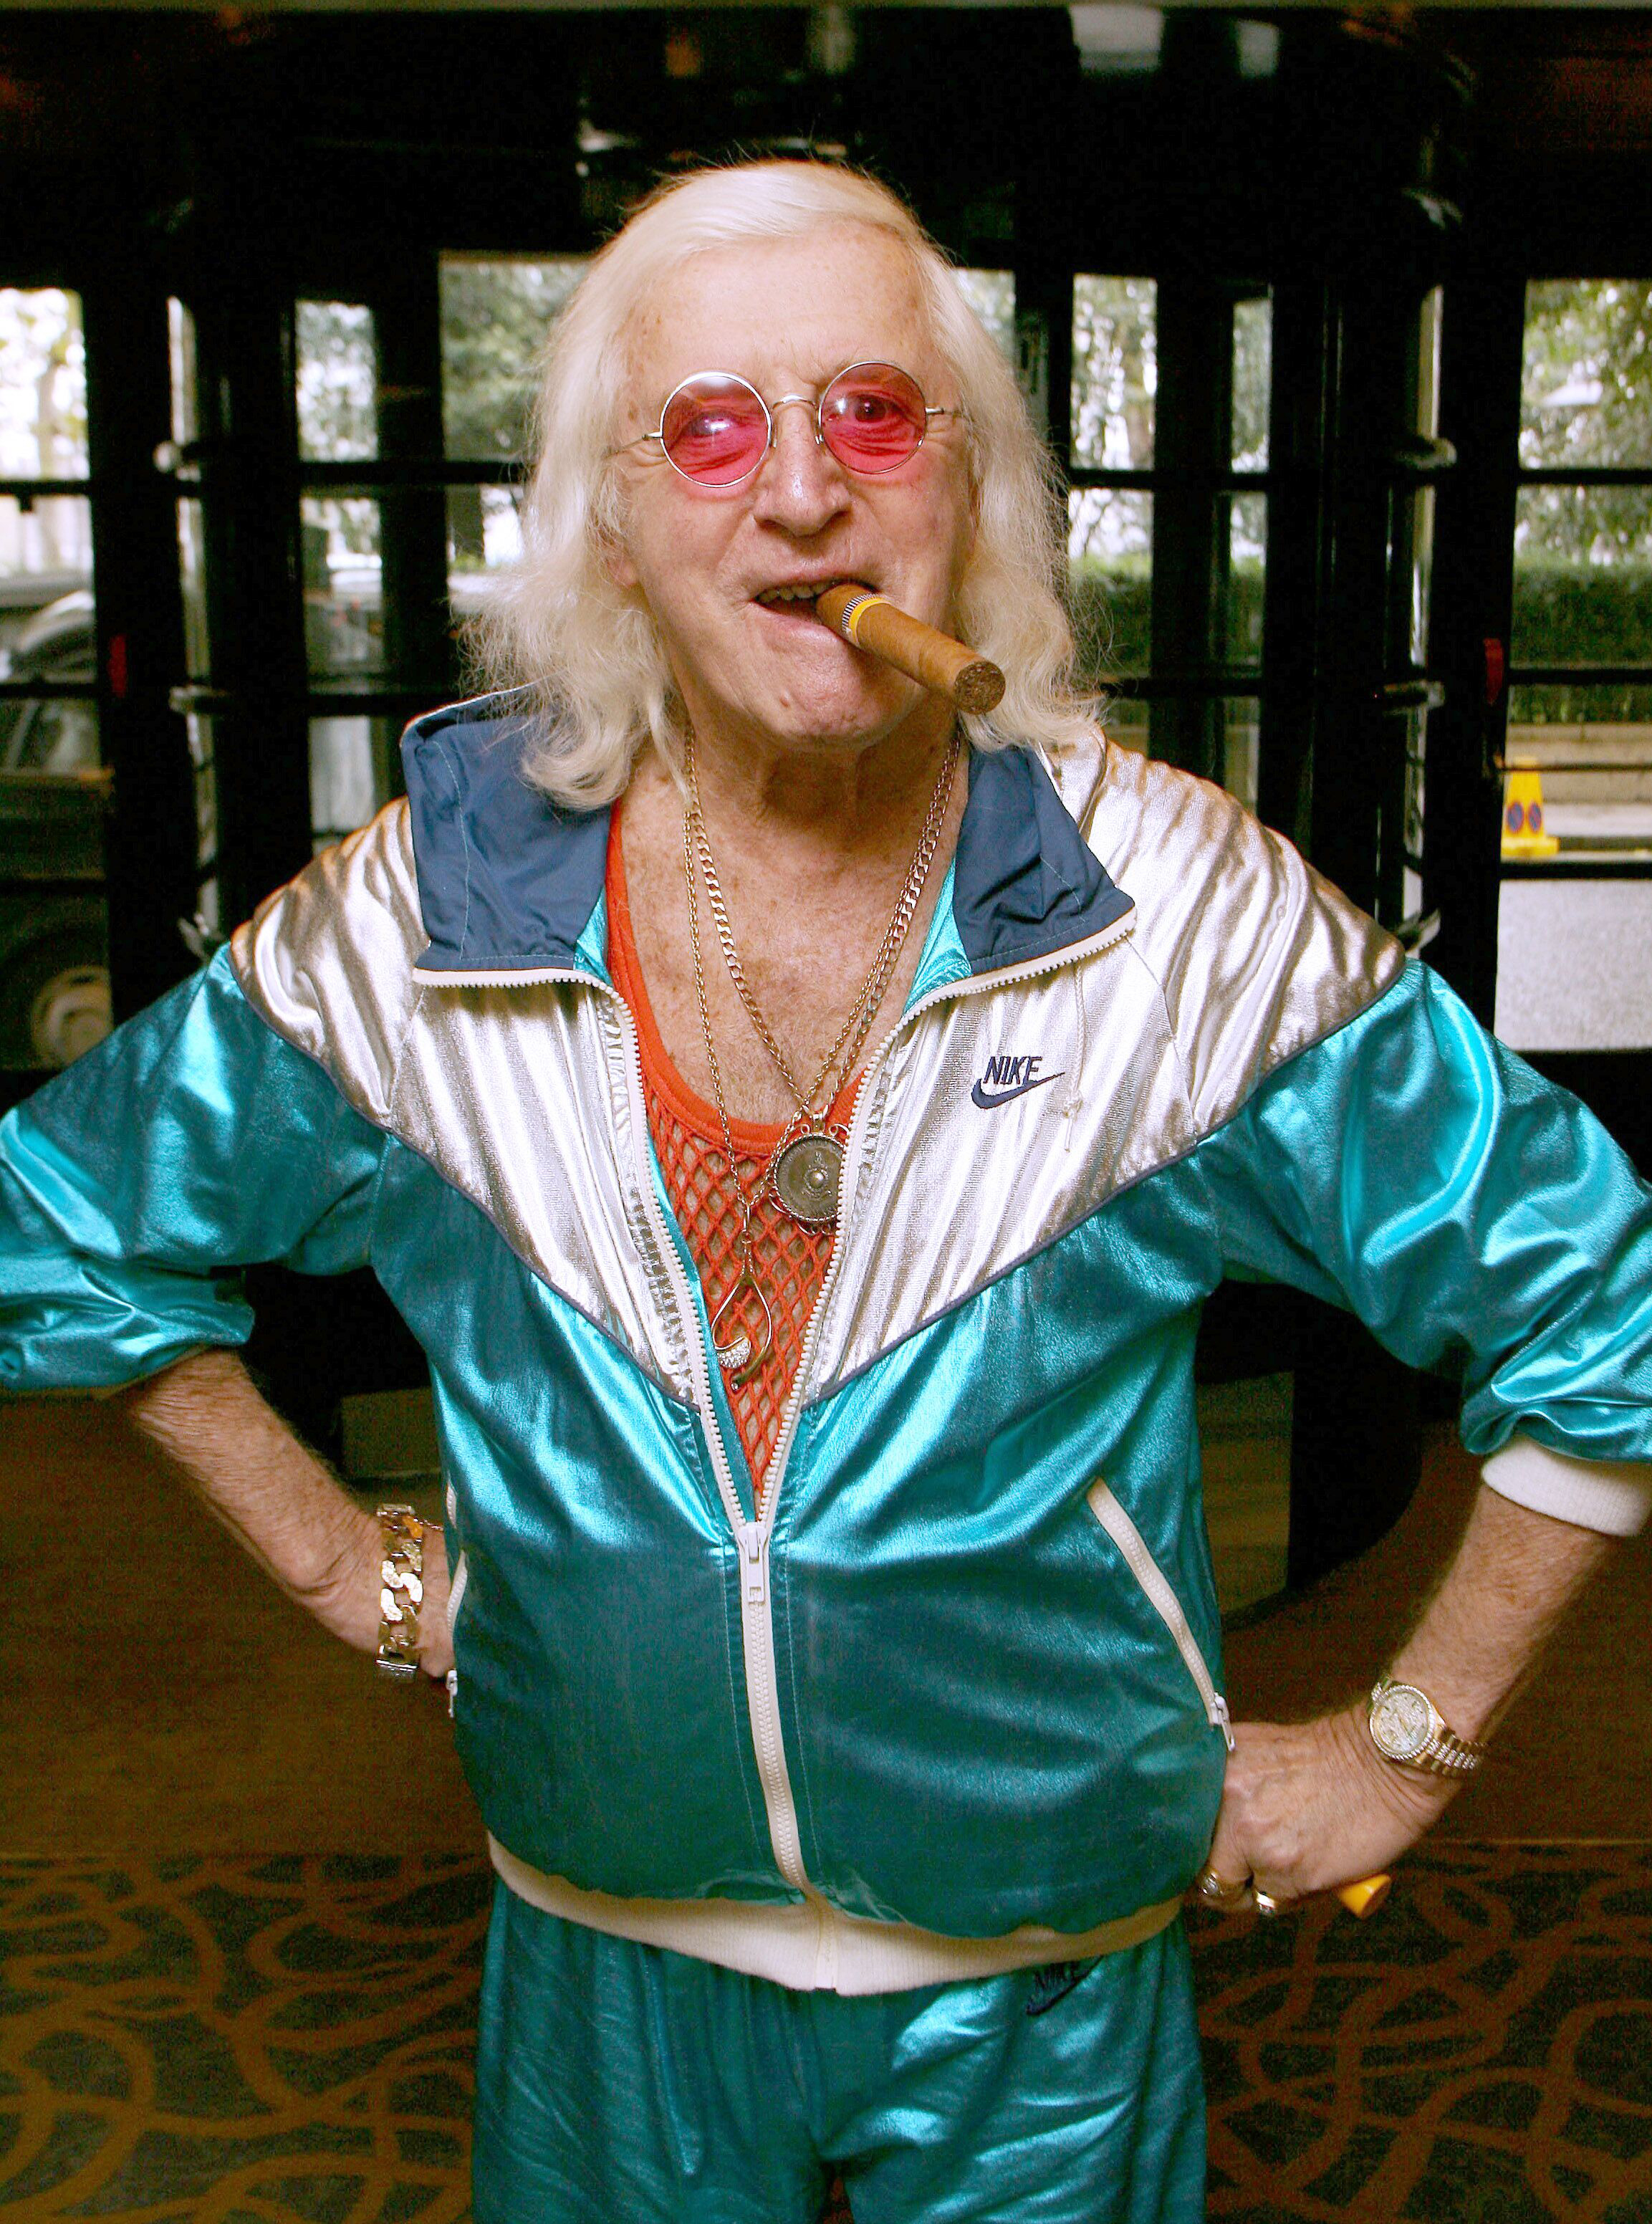 late sir jimmy savile accused of grooming and sexually